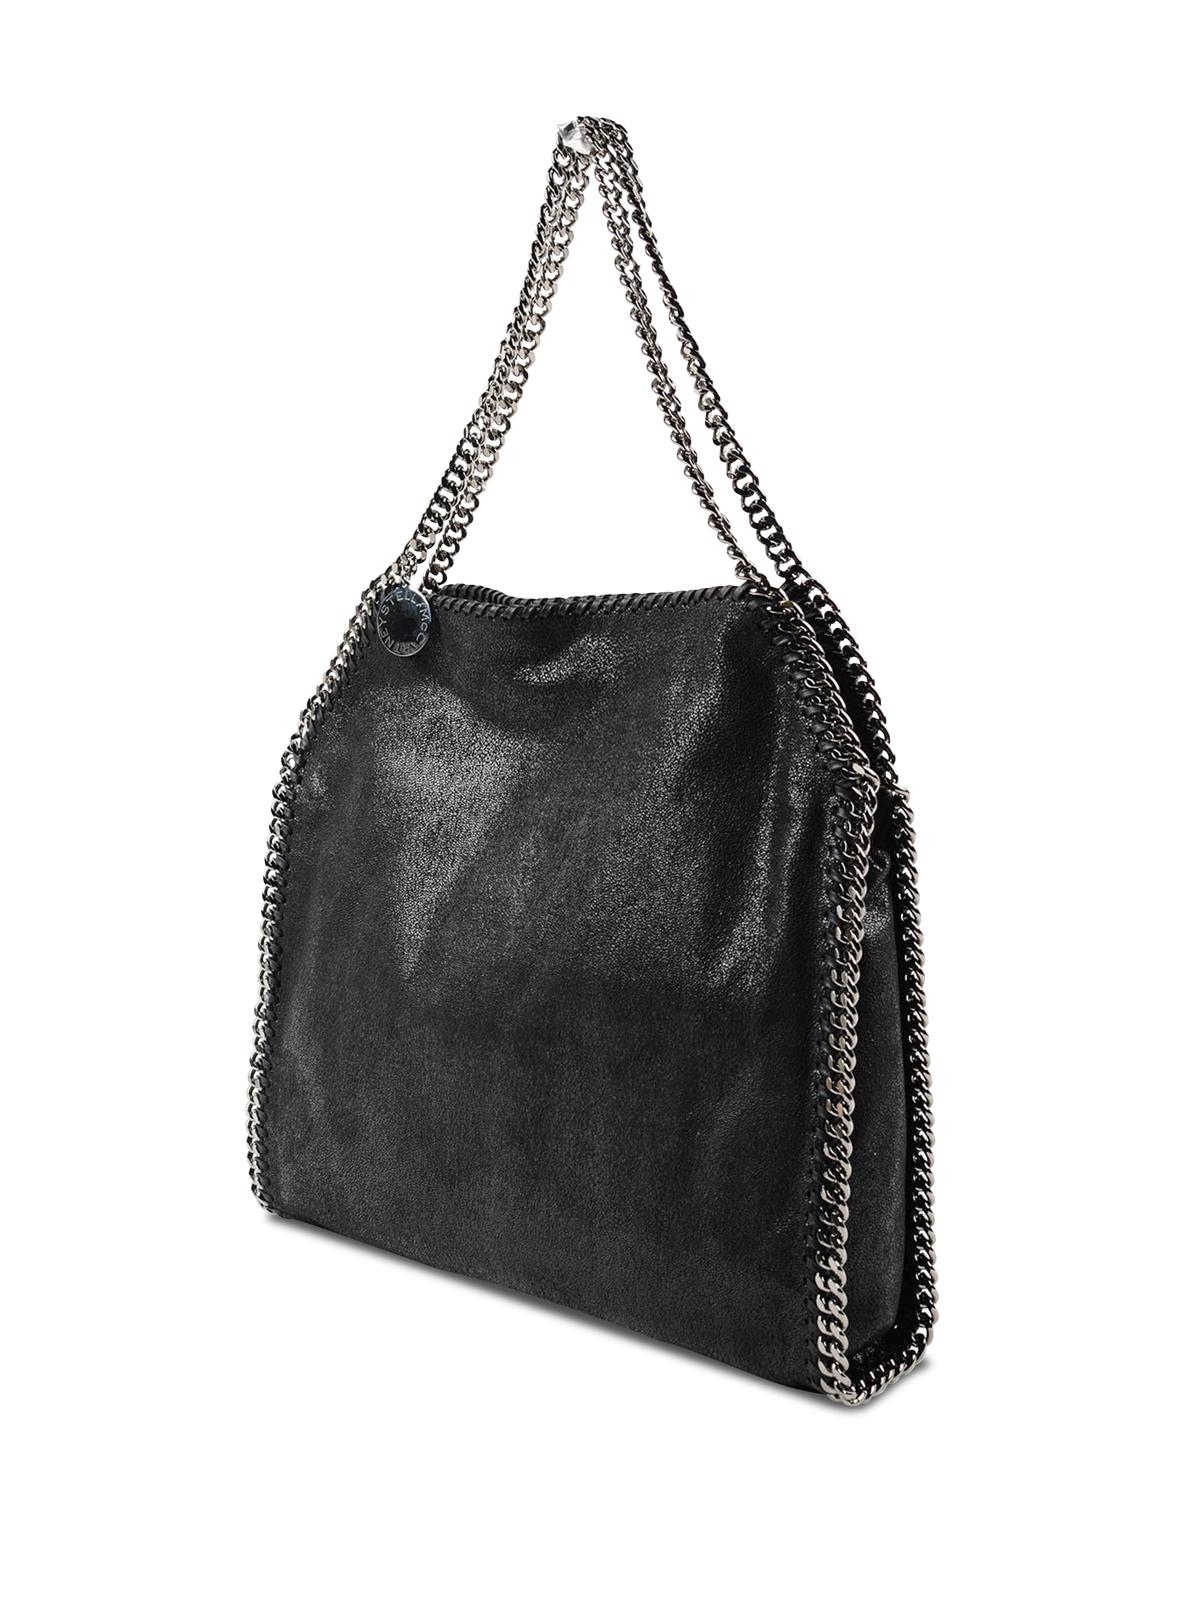 Stella McCartney Synthetic Small Tote SHAGGY Deer Falabella in Black - Save 8%